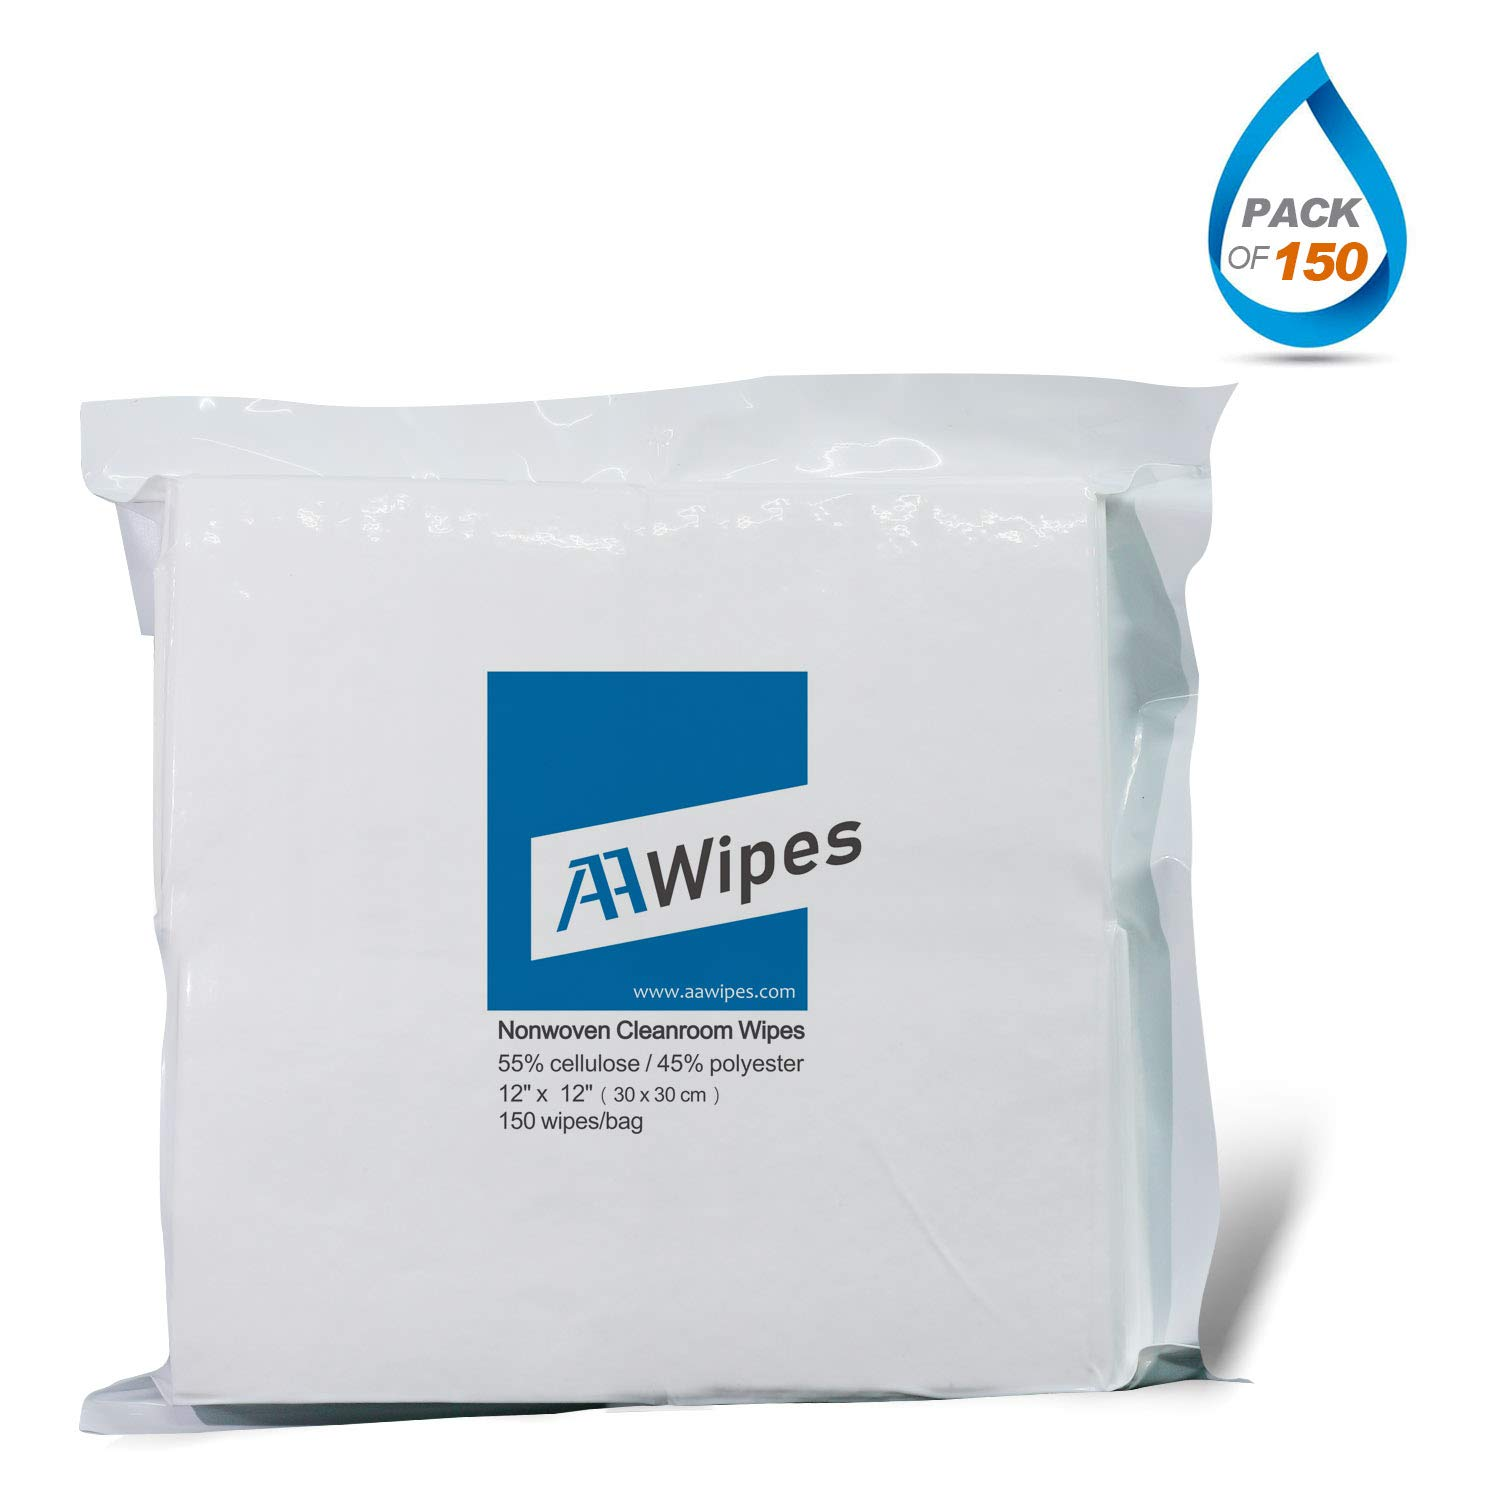 Cleanroom Wipes Nonwoven Wipers Cellulose/Polyester Blend 12'' x 12'' (Bag of 150 Pcs) for Lab, Electronics, Pharmaceutical, Printing and Semiconductor Industries by AAWipes